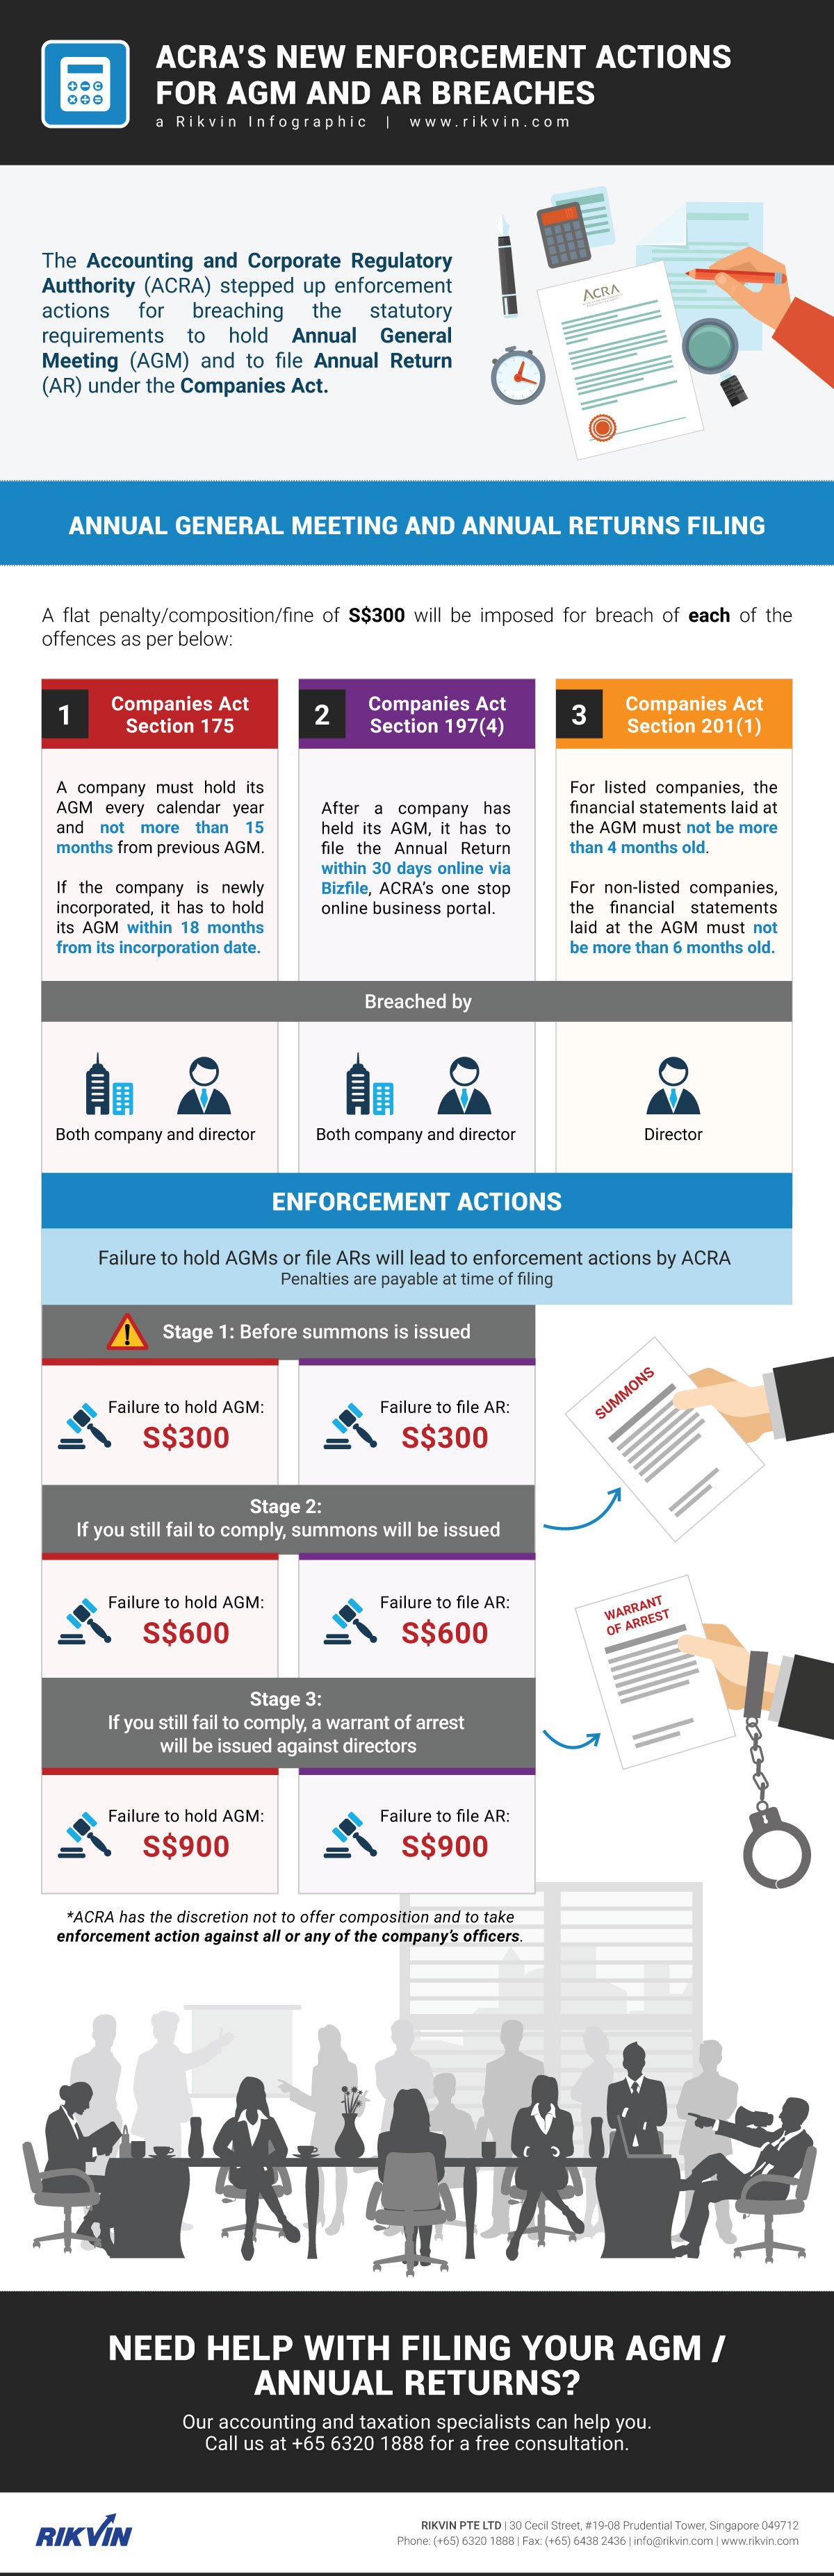 ACRA_New_Enforcement_Actions-Rikvin_Infographics New Enforcement Actions by ACRA for AGM and AR Breaches